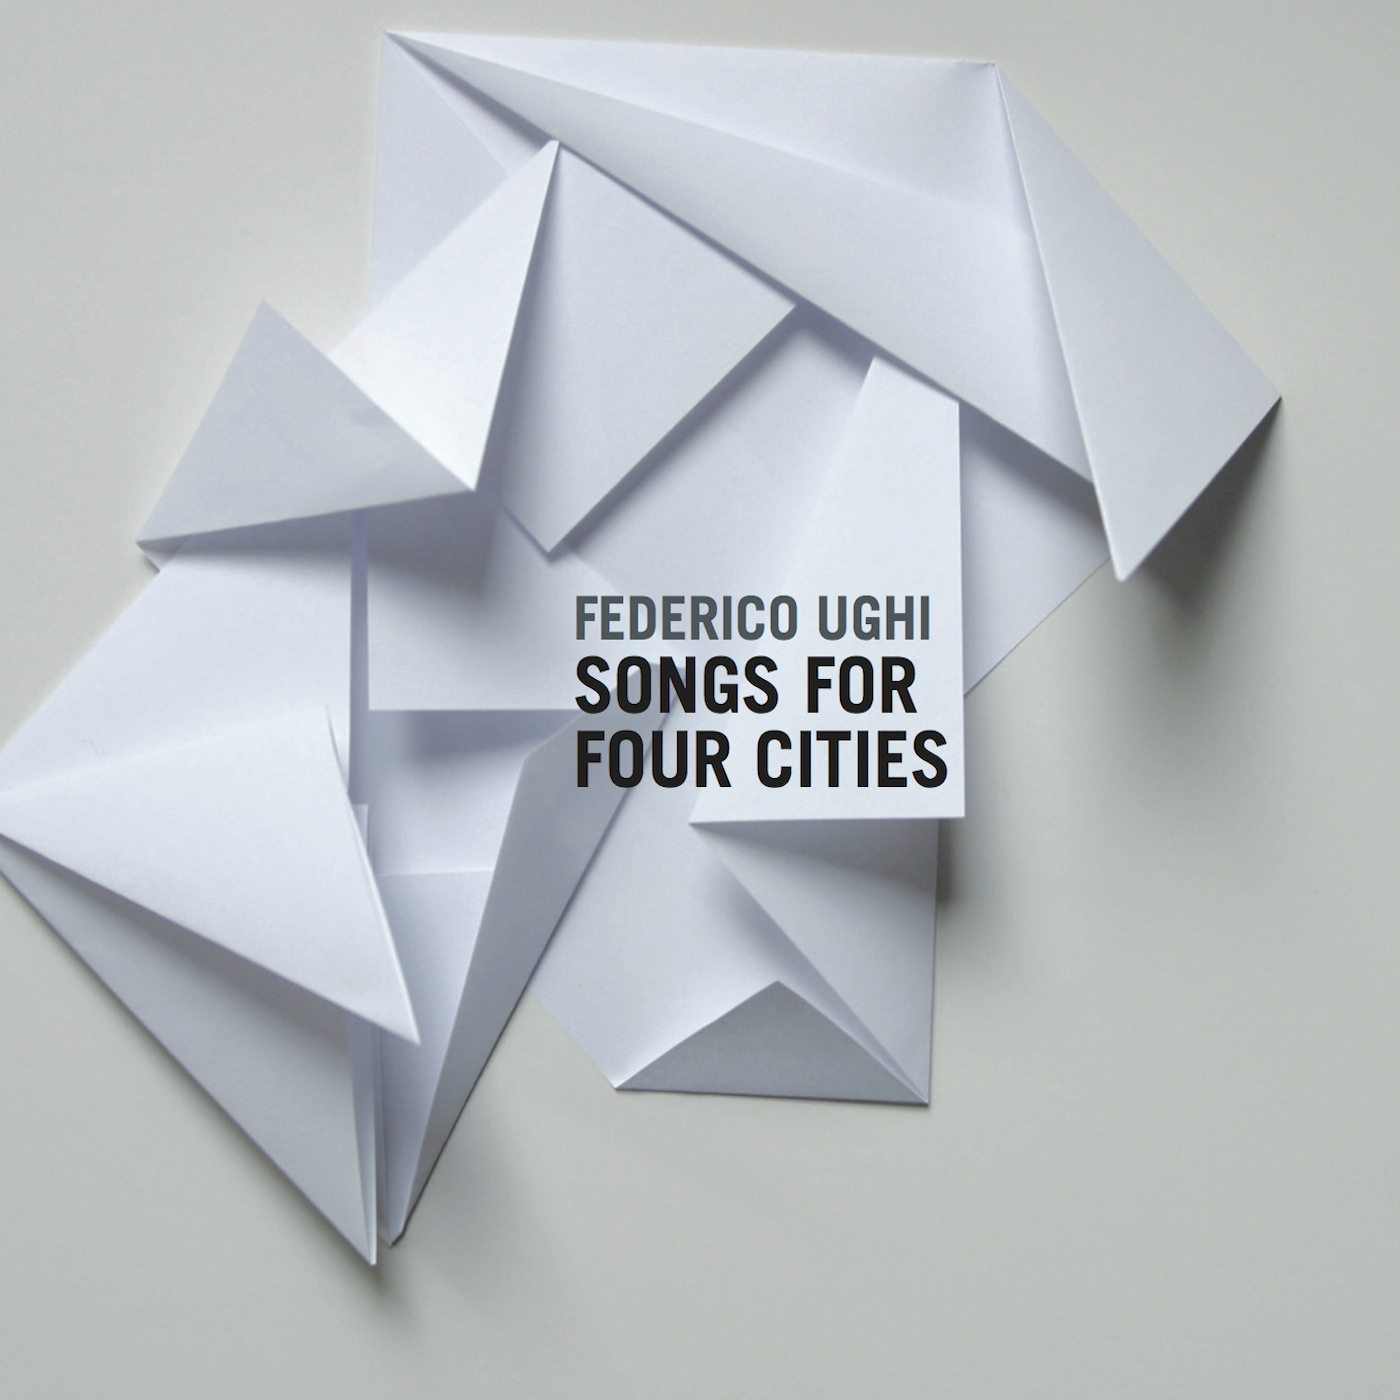 FEDERICO UGHI :: SONGS FOR FOUR CITIES